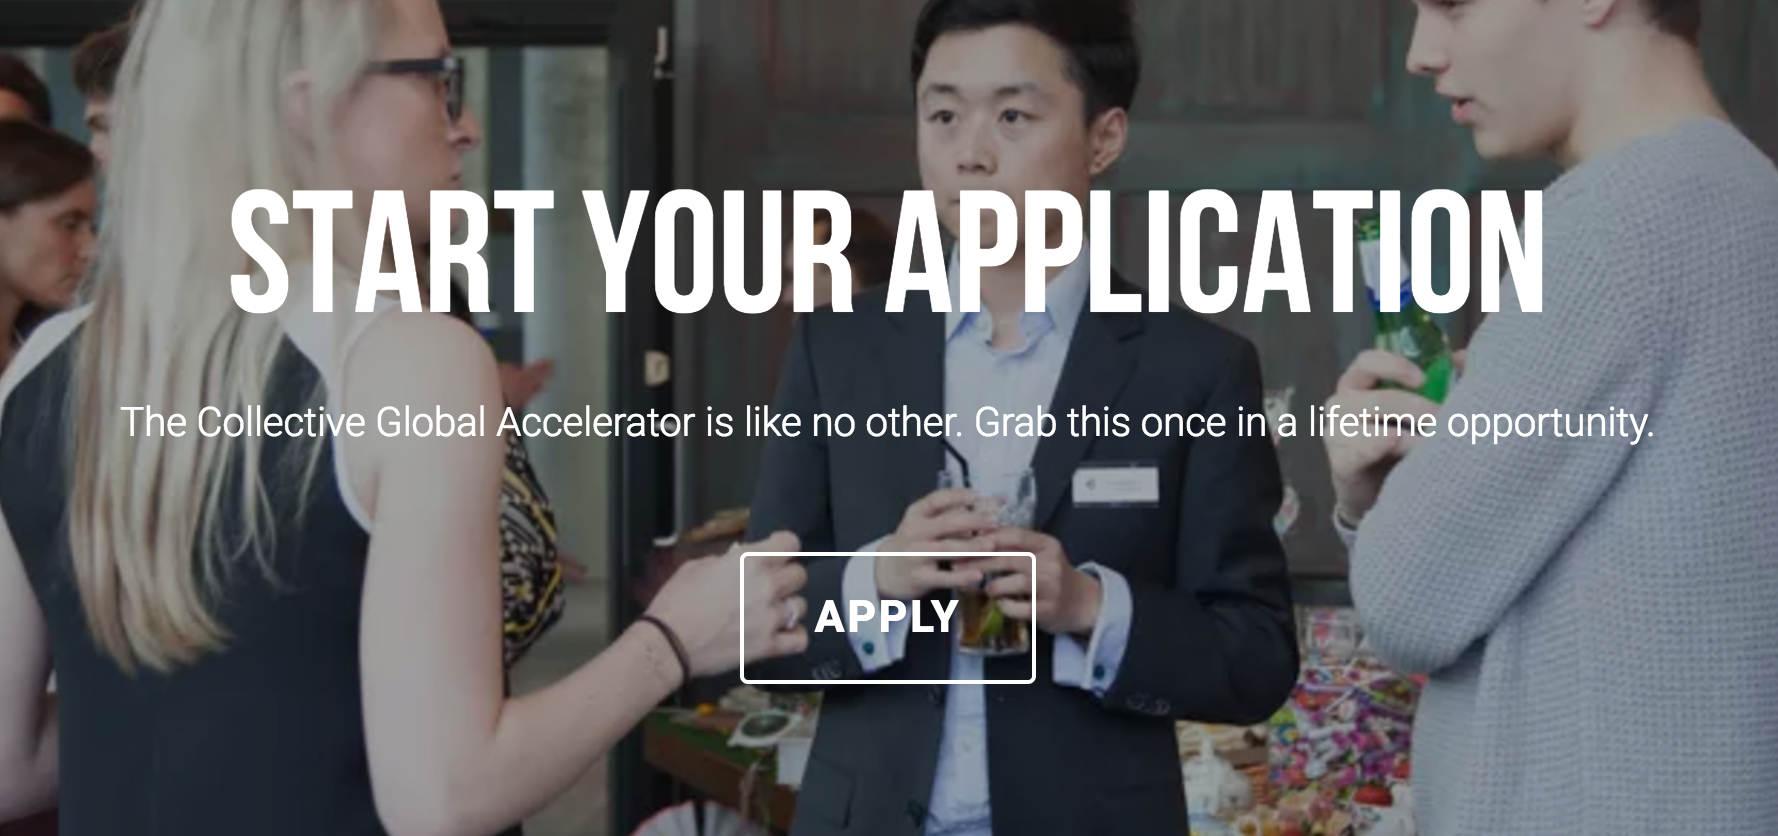 Collective global accelerator